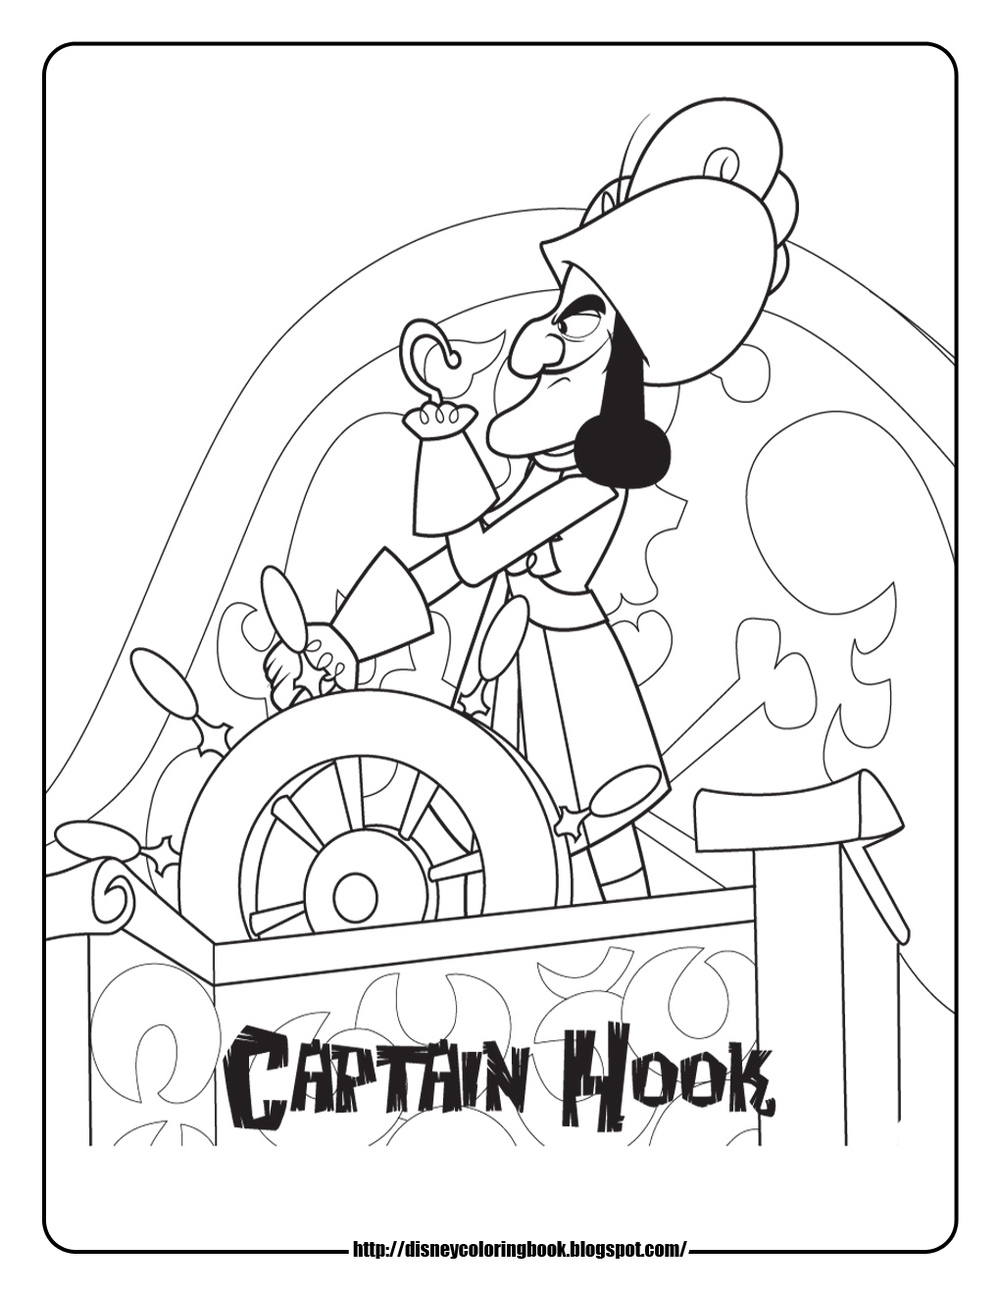 JNP Captain Hook.jpg